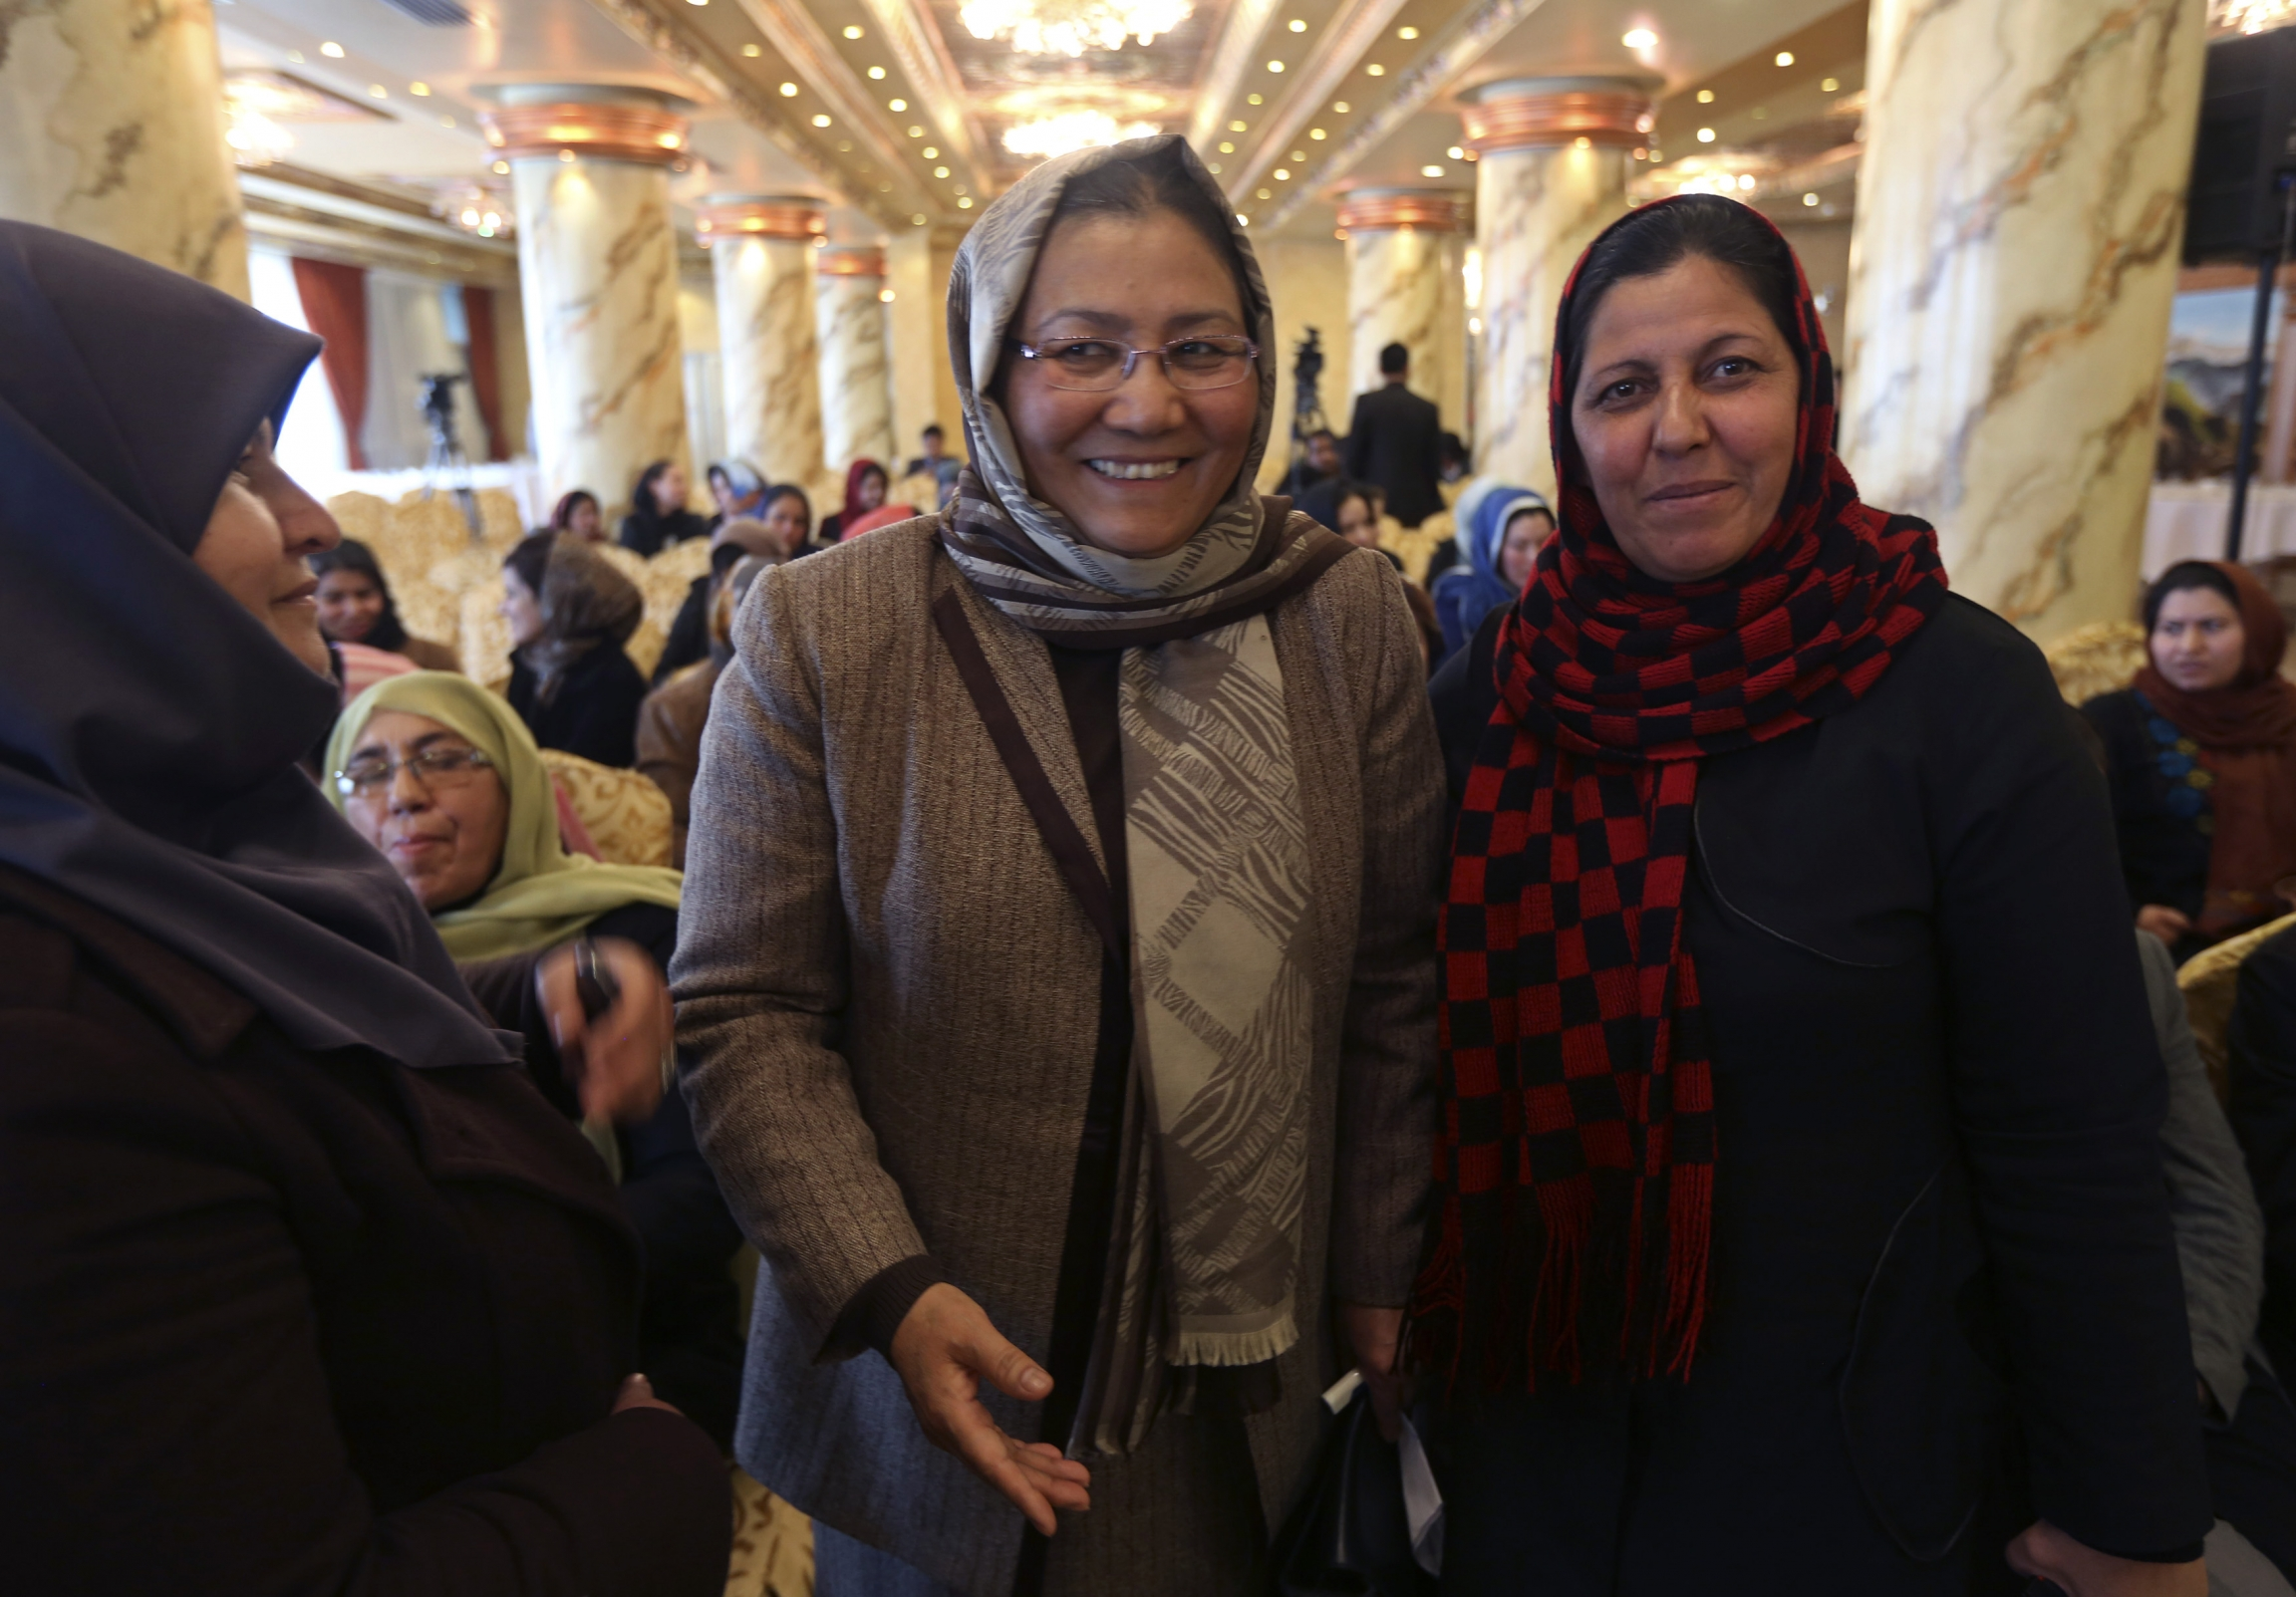 Three women wearing headscarves stand together and the one in the middle, wearing glasses, smiles.